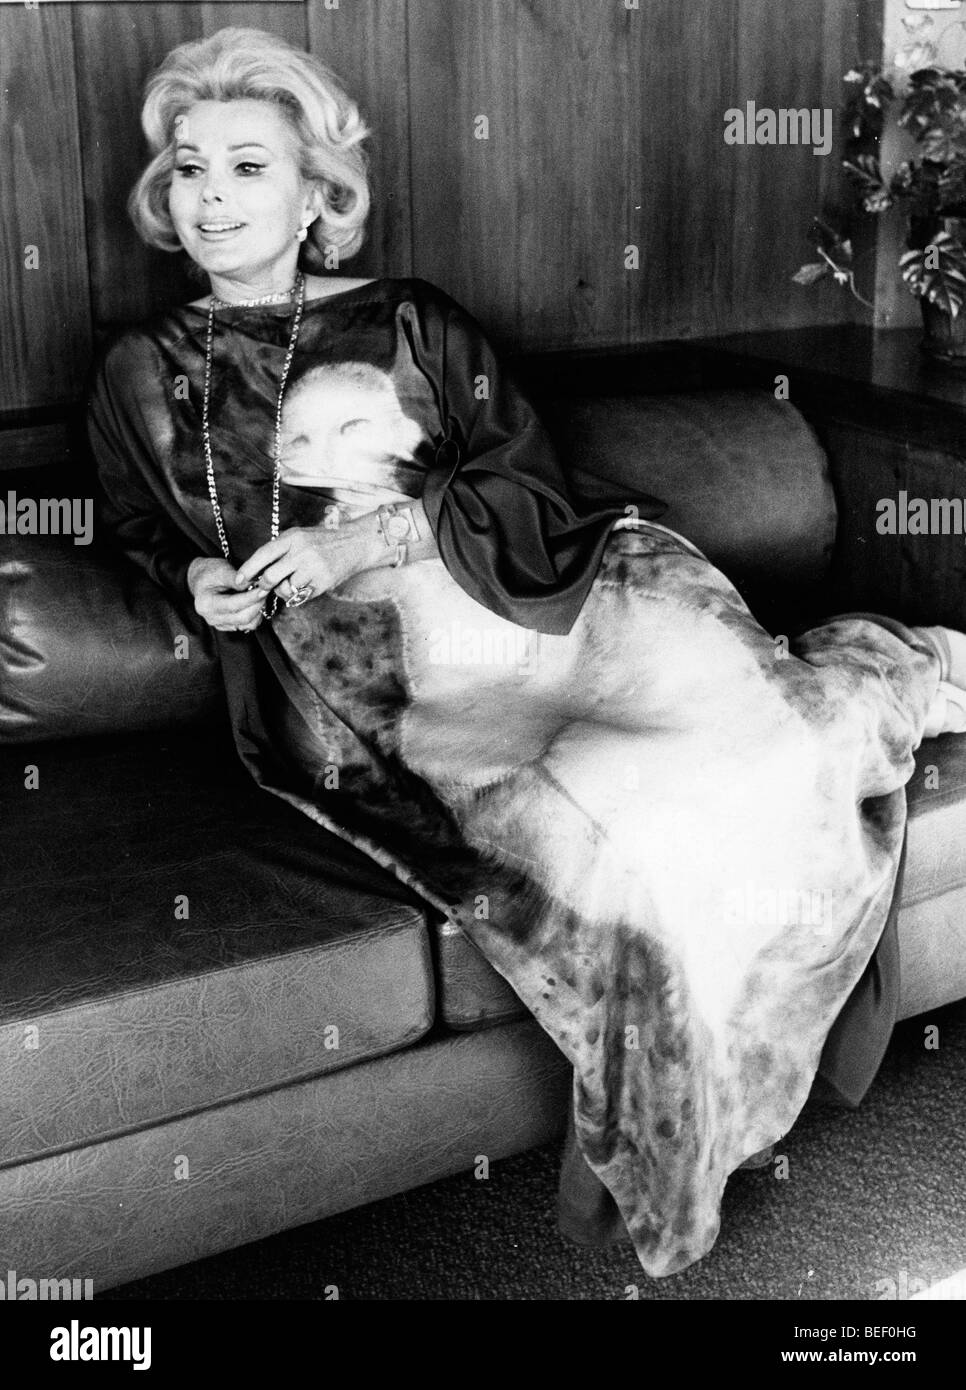 Actress and socialite Zsa Zsa Gabor with her dog in the 1970's. Stock Photo